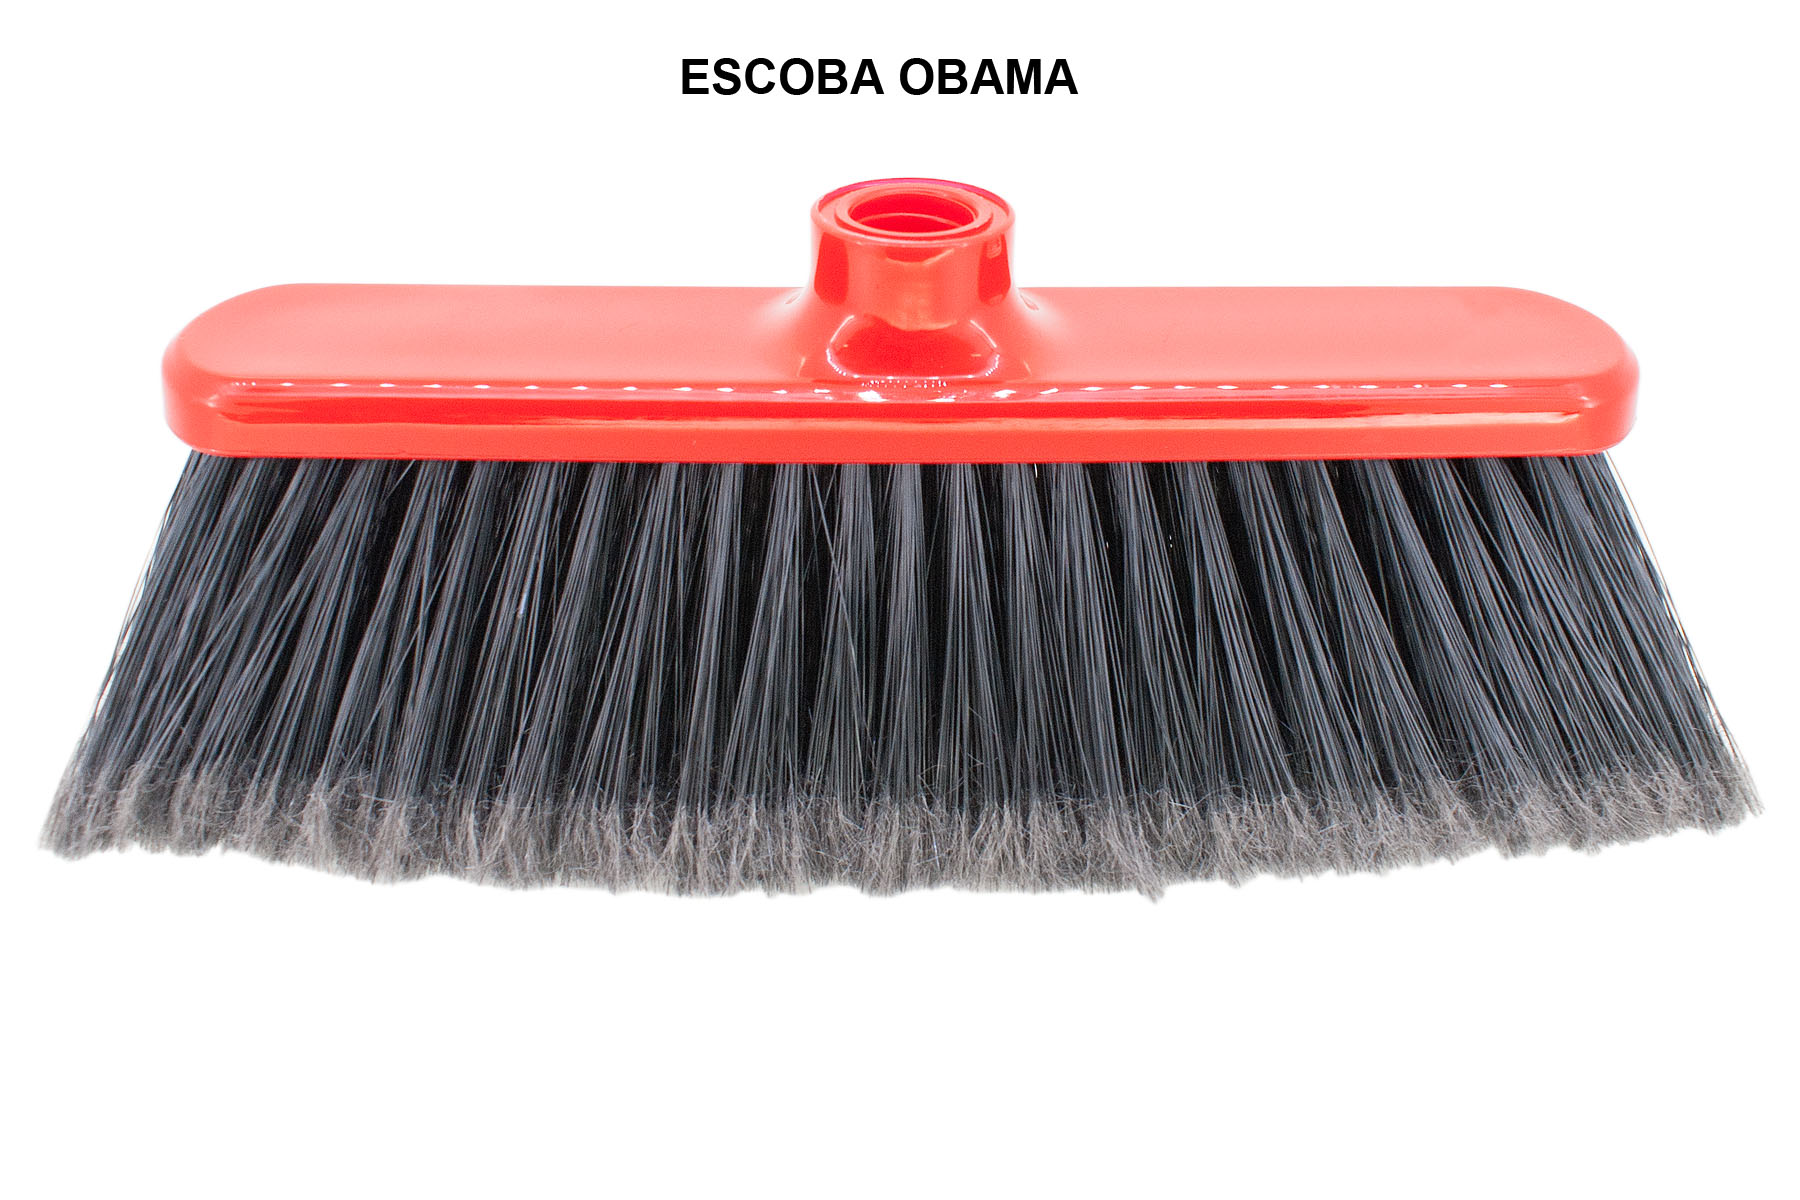 ESCOBA OBAMA PAMEX